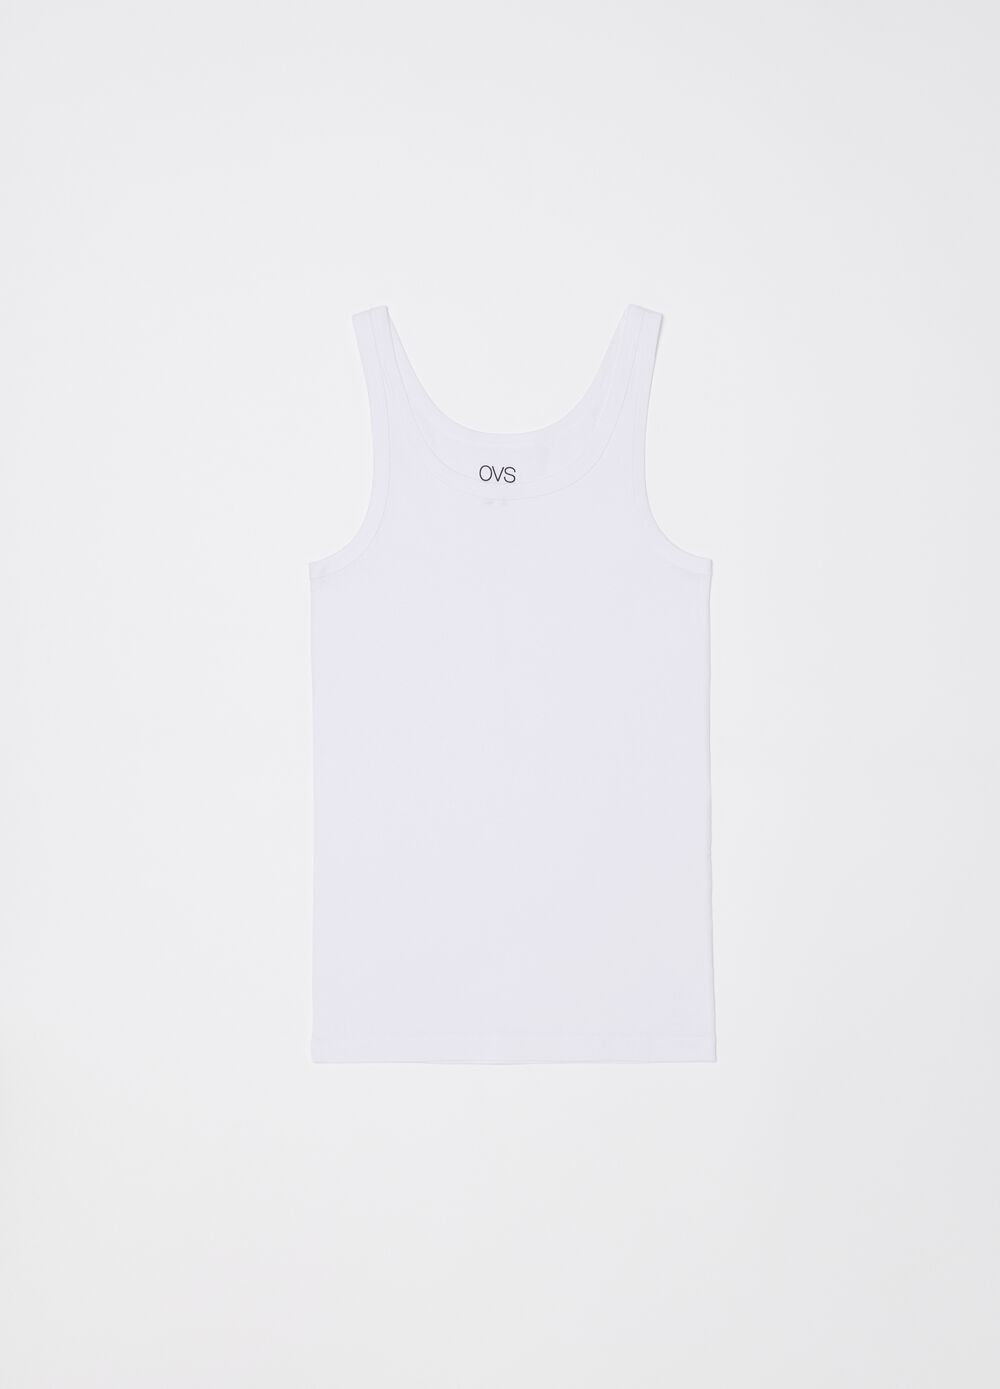 Ribbed racerback top with narrow shoulder straps